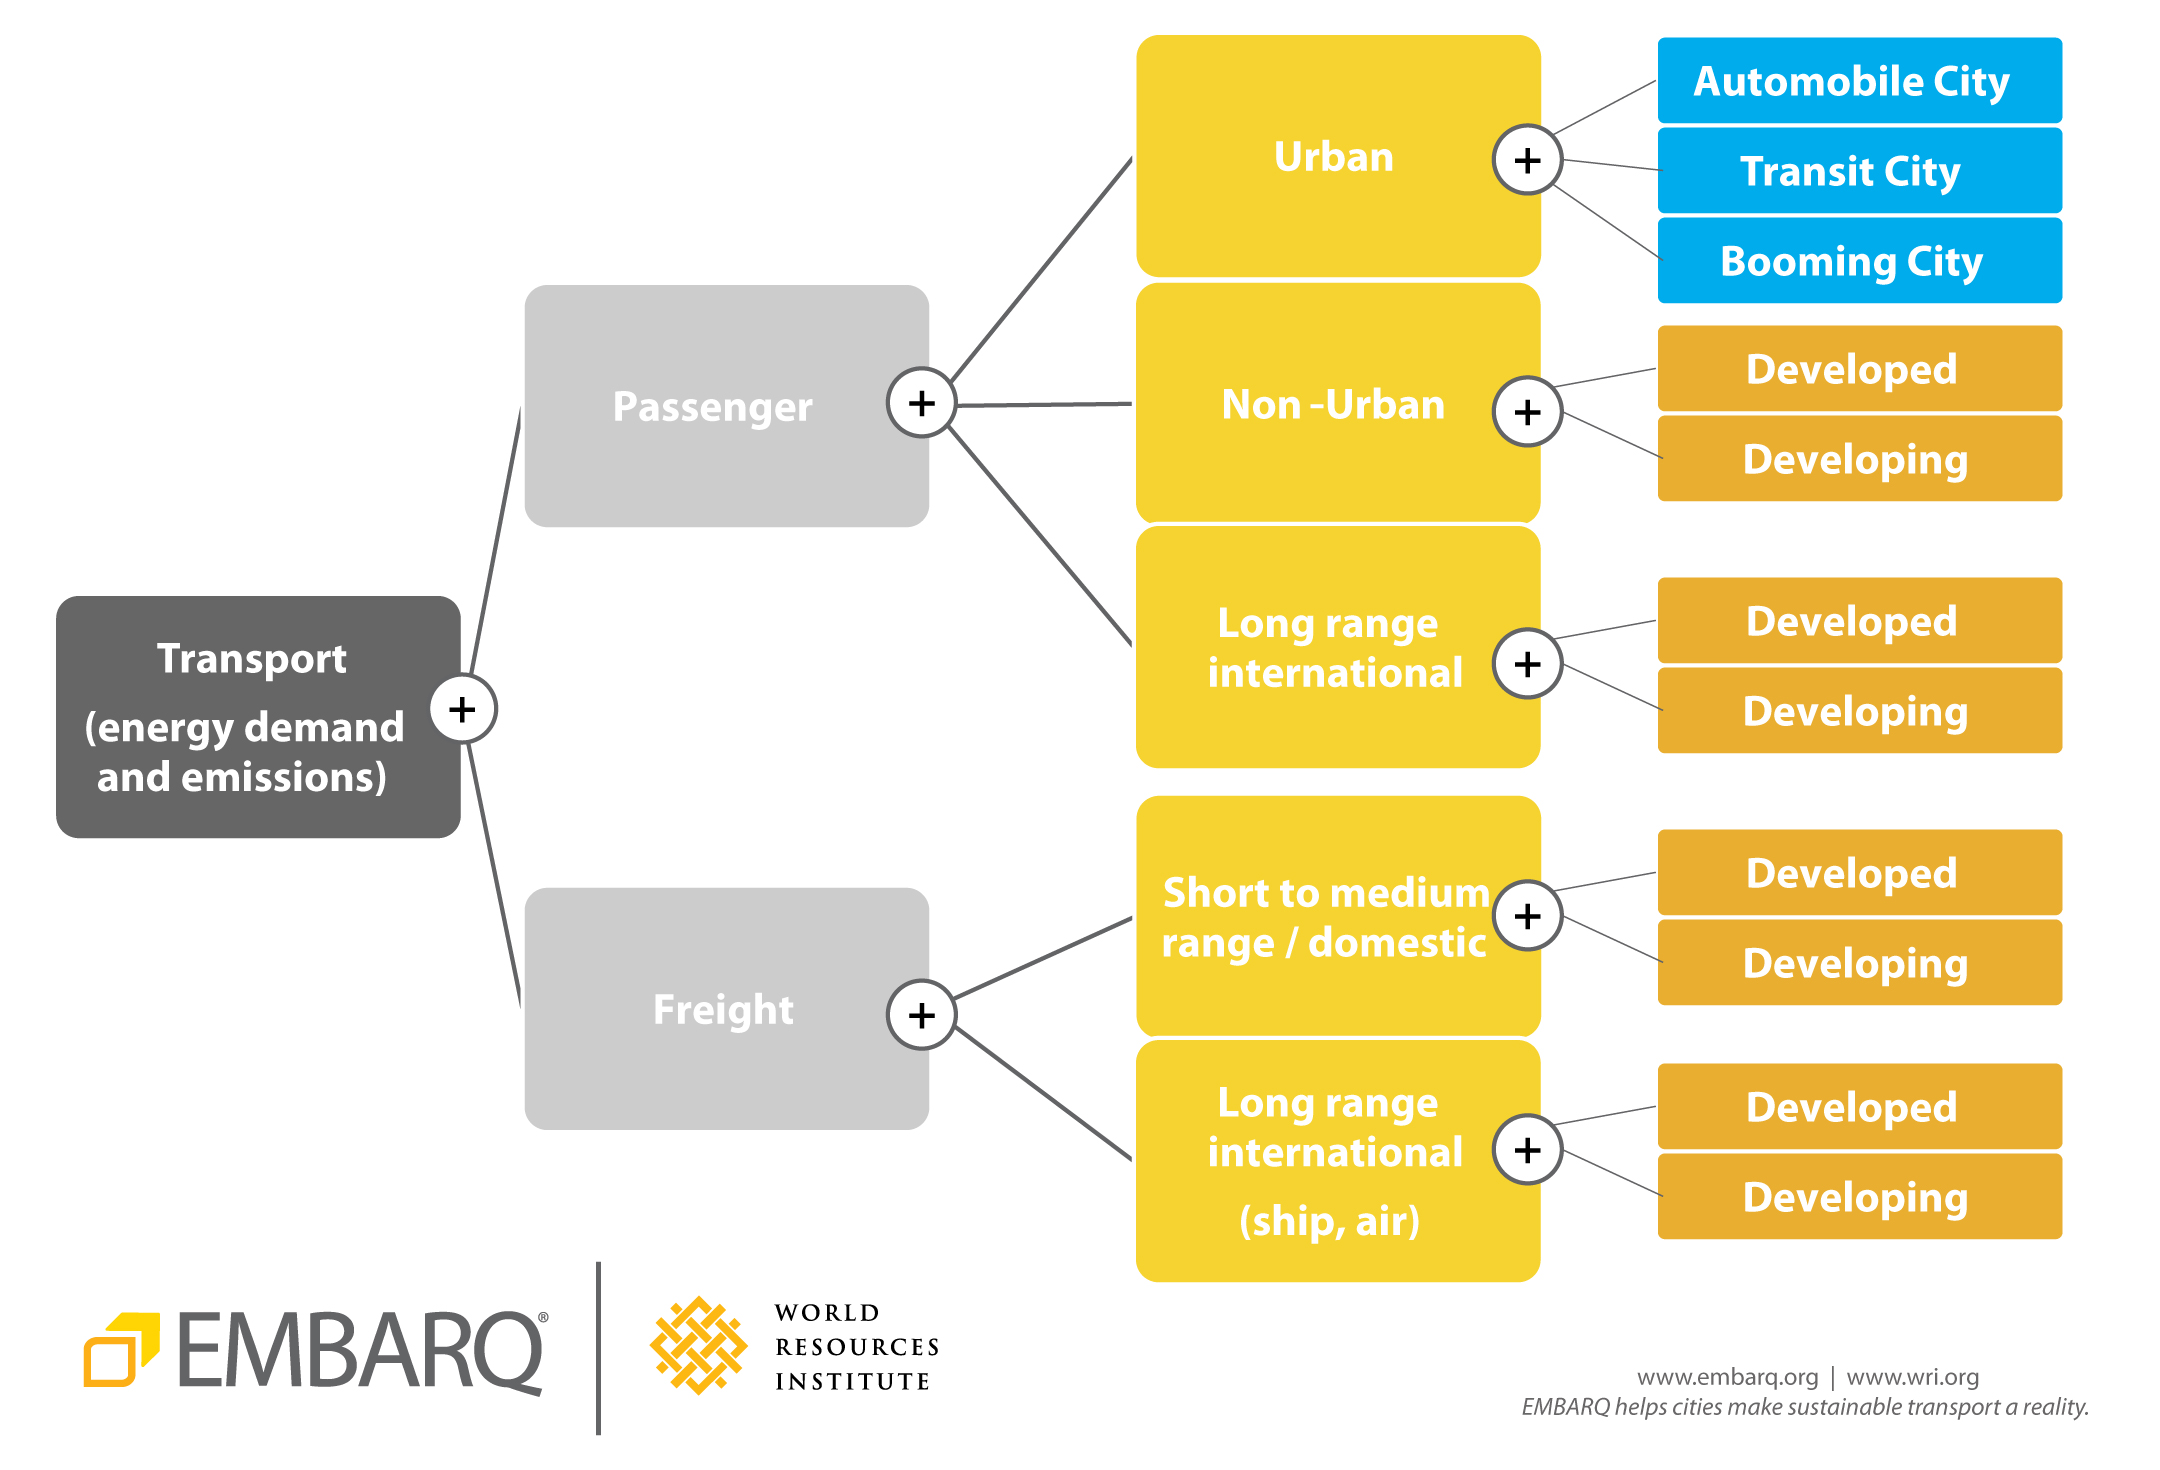 EMBARQ used its expertise in sustainable transport around the world to model transport emissions from developed and developing countries. Graphic by Erin Cooper.